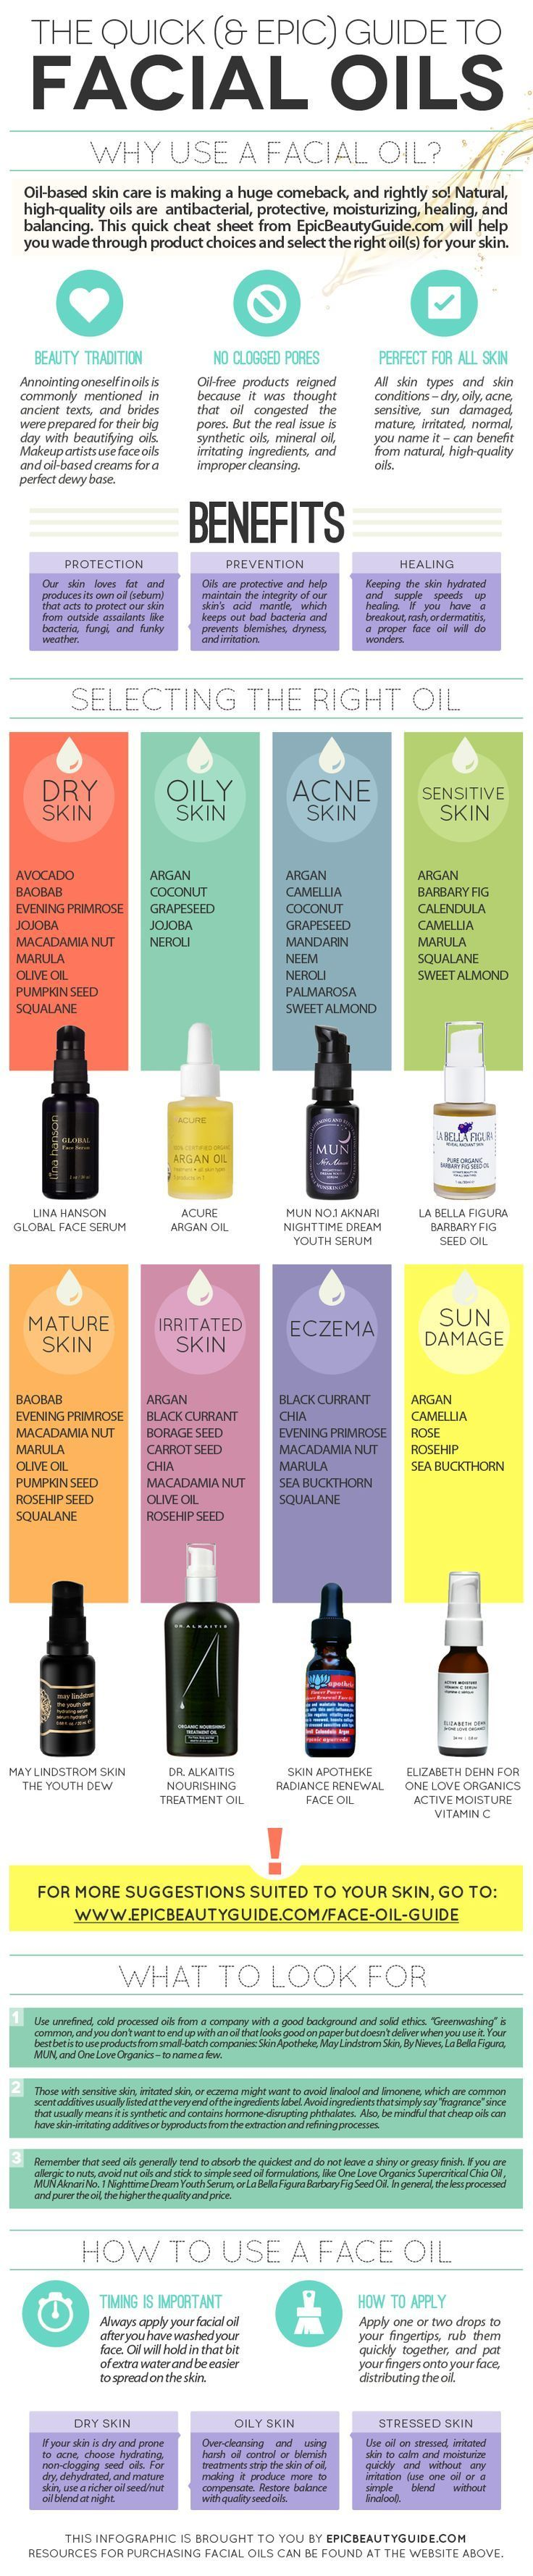 The Quick (& Epic) Guide to Facial Oils